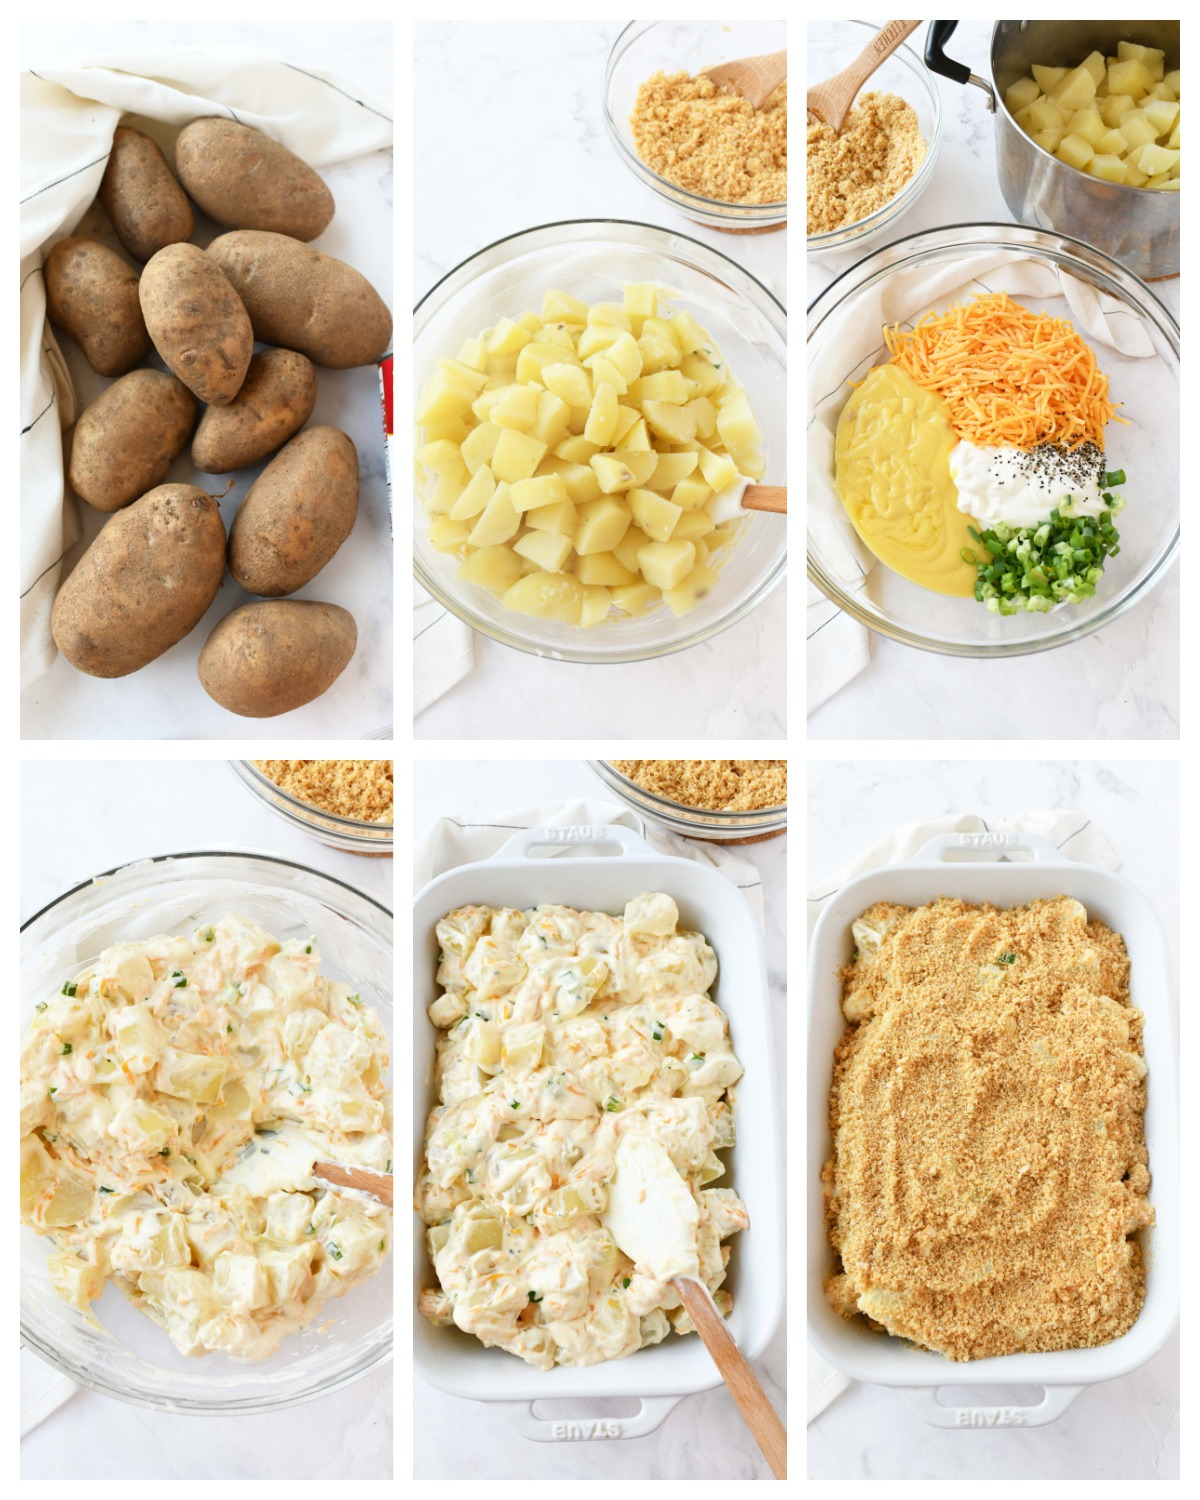 A 6 image collage showing the steps to make funeral potatoes.